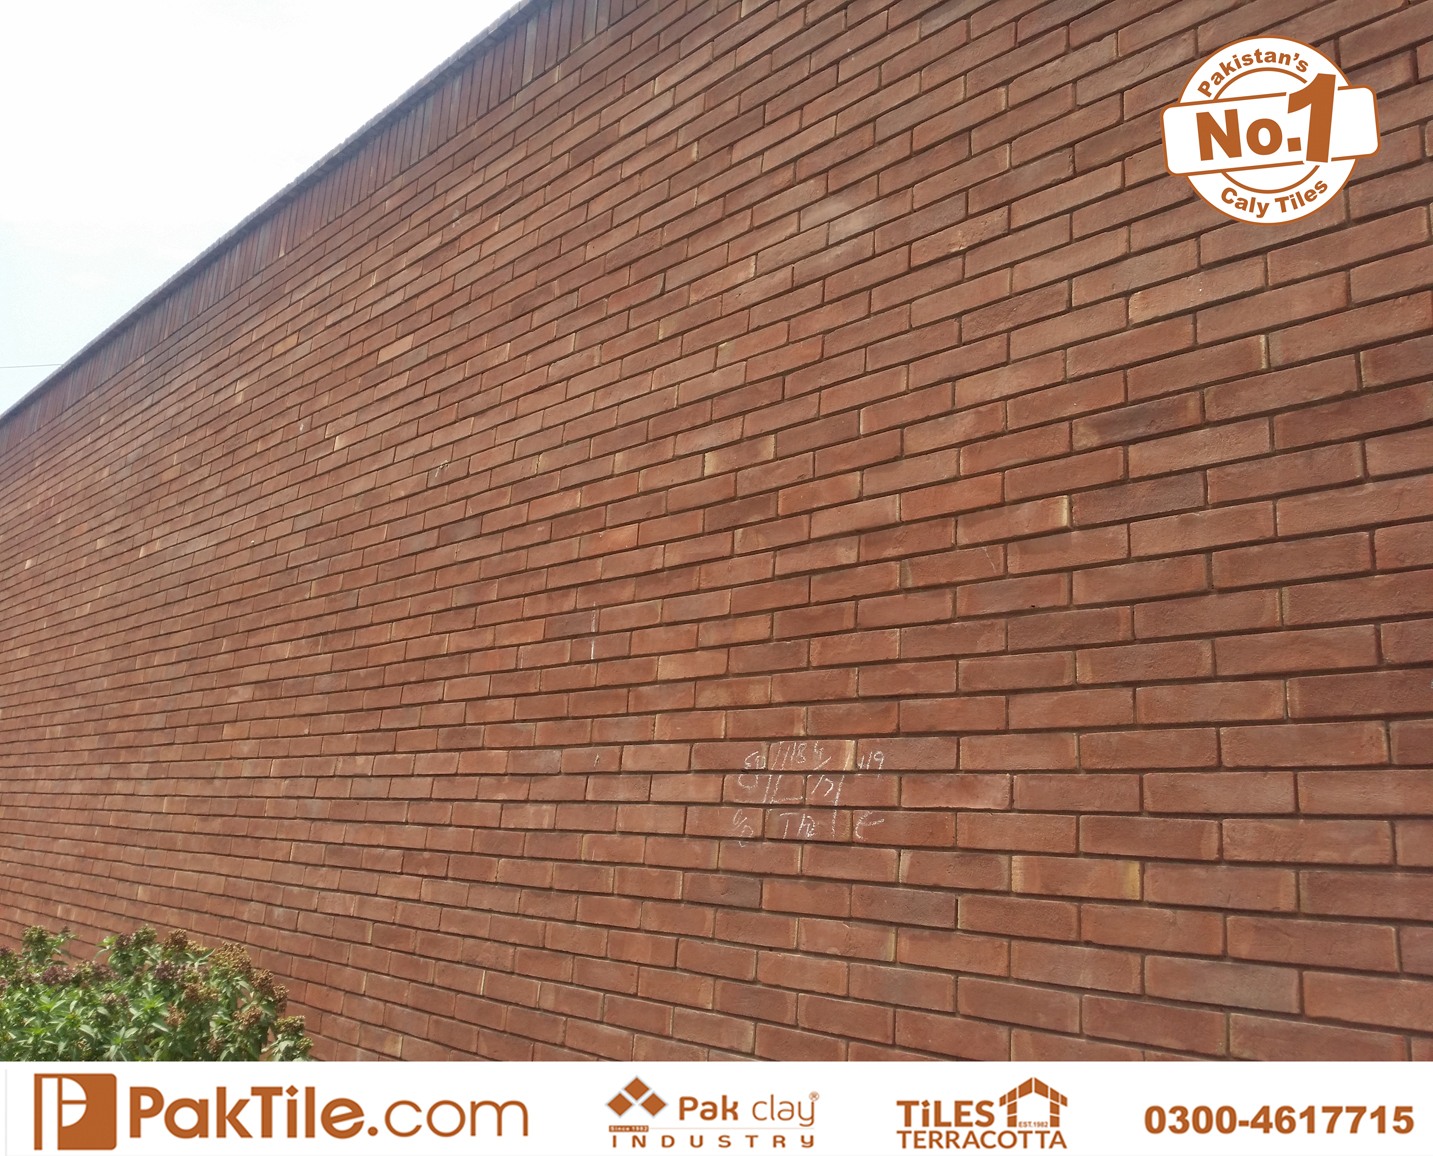 Pak Clay Red Gutka Gas Brick Tile Texture Price in Rawalpindi Pakistan Best Exterior Front Boundary Wall Cladding Tiles Images